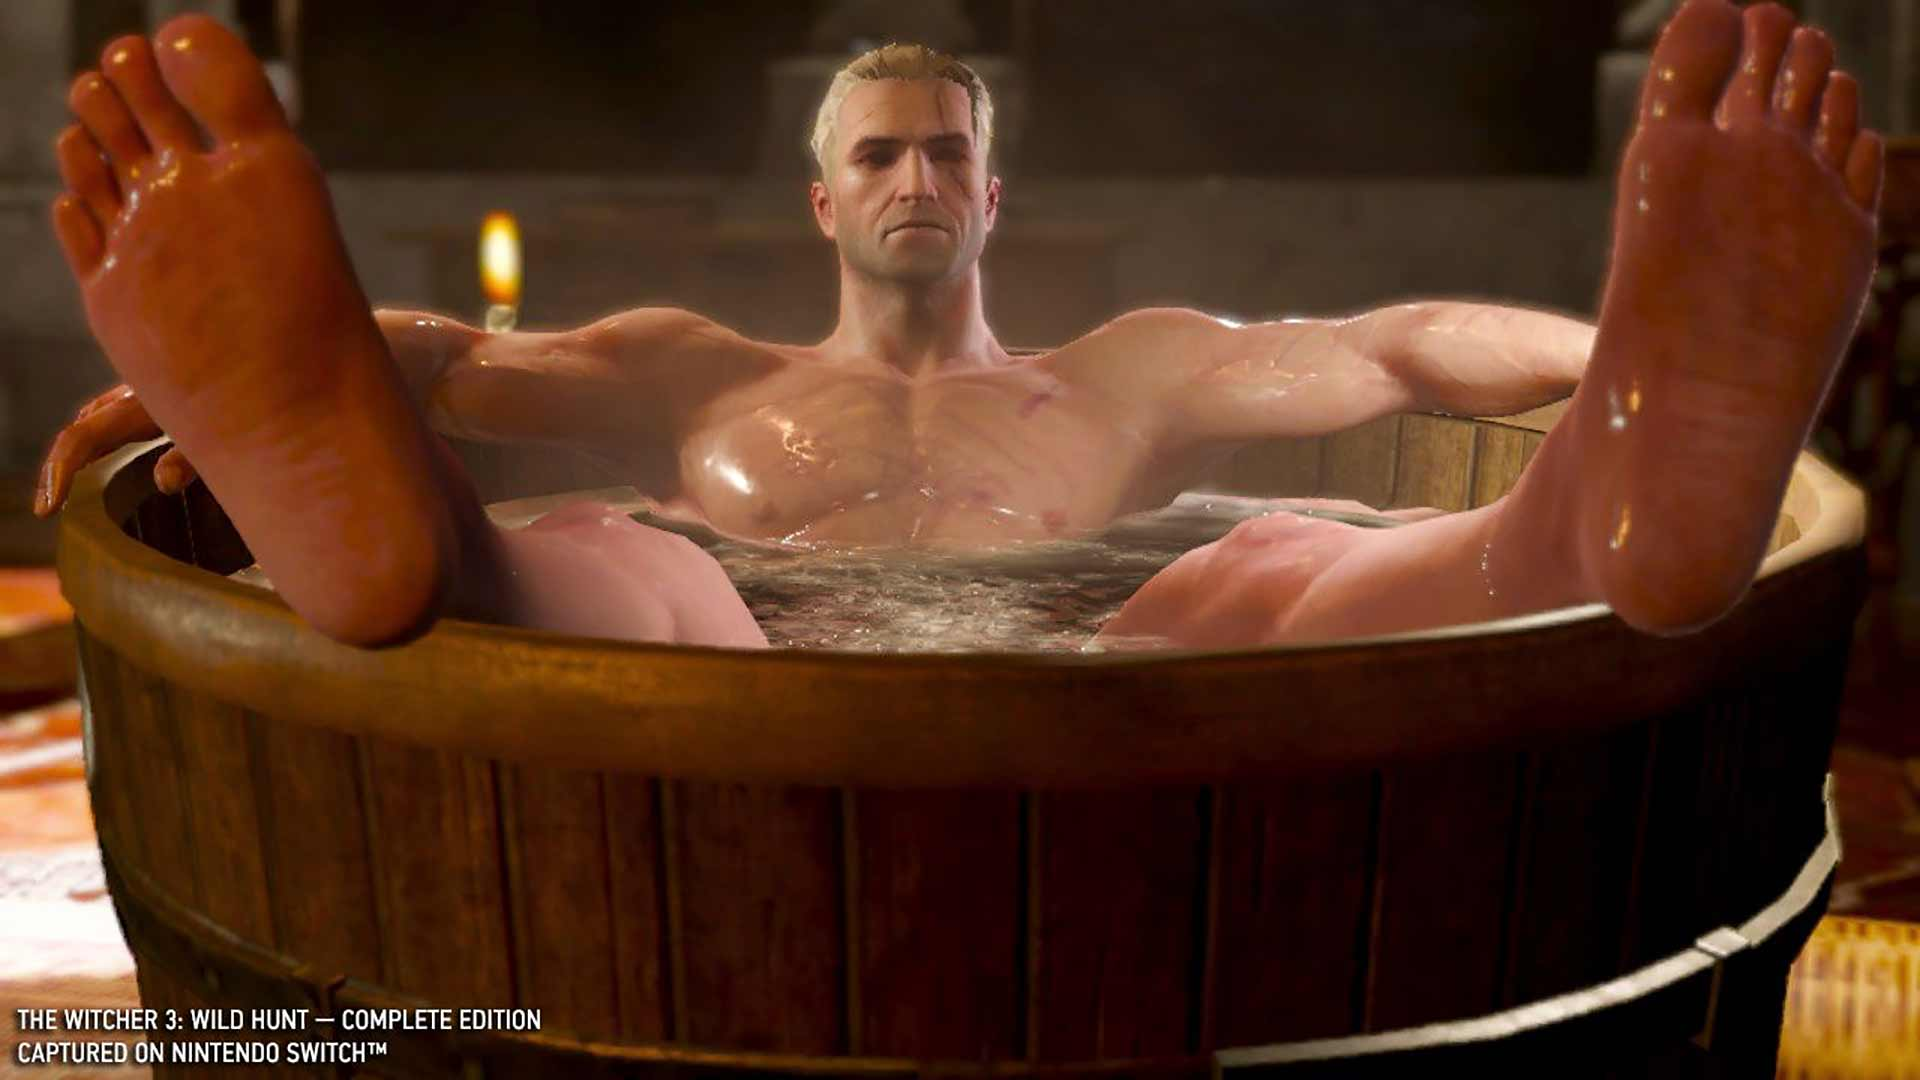 The Witcher 3: Wild Hunt Geralt in bathtub